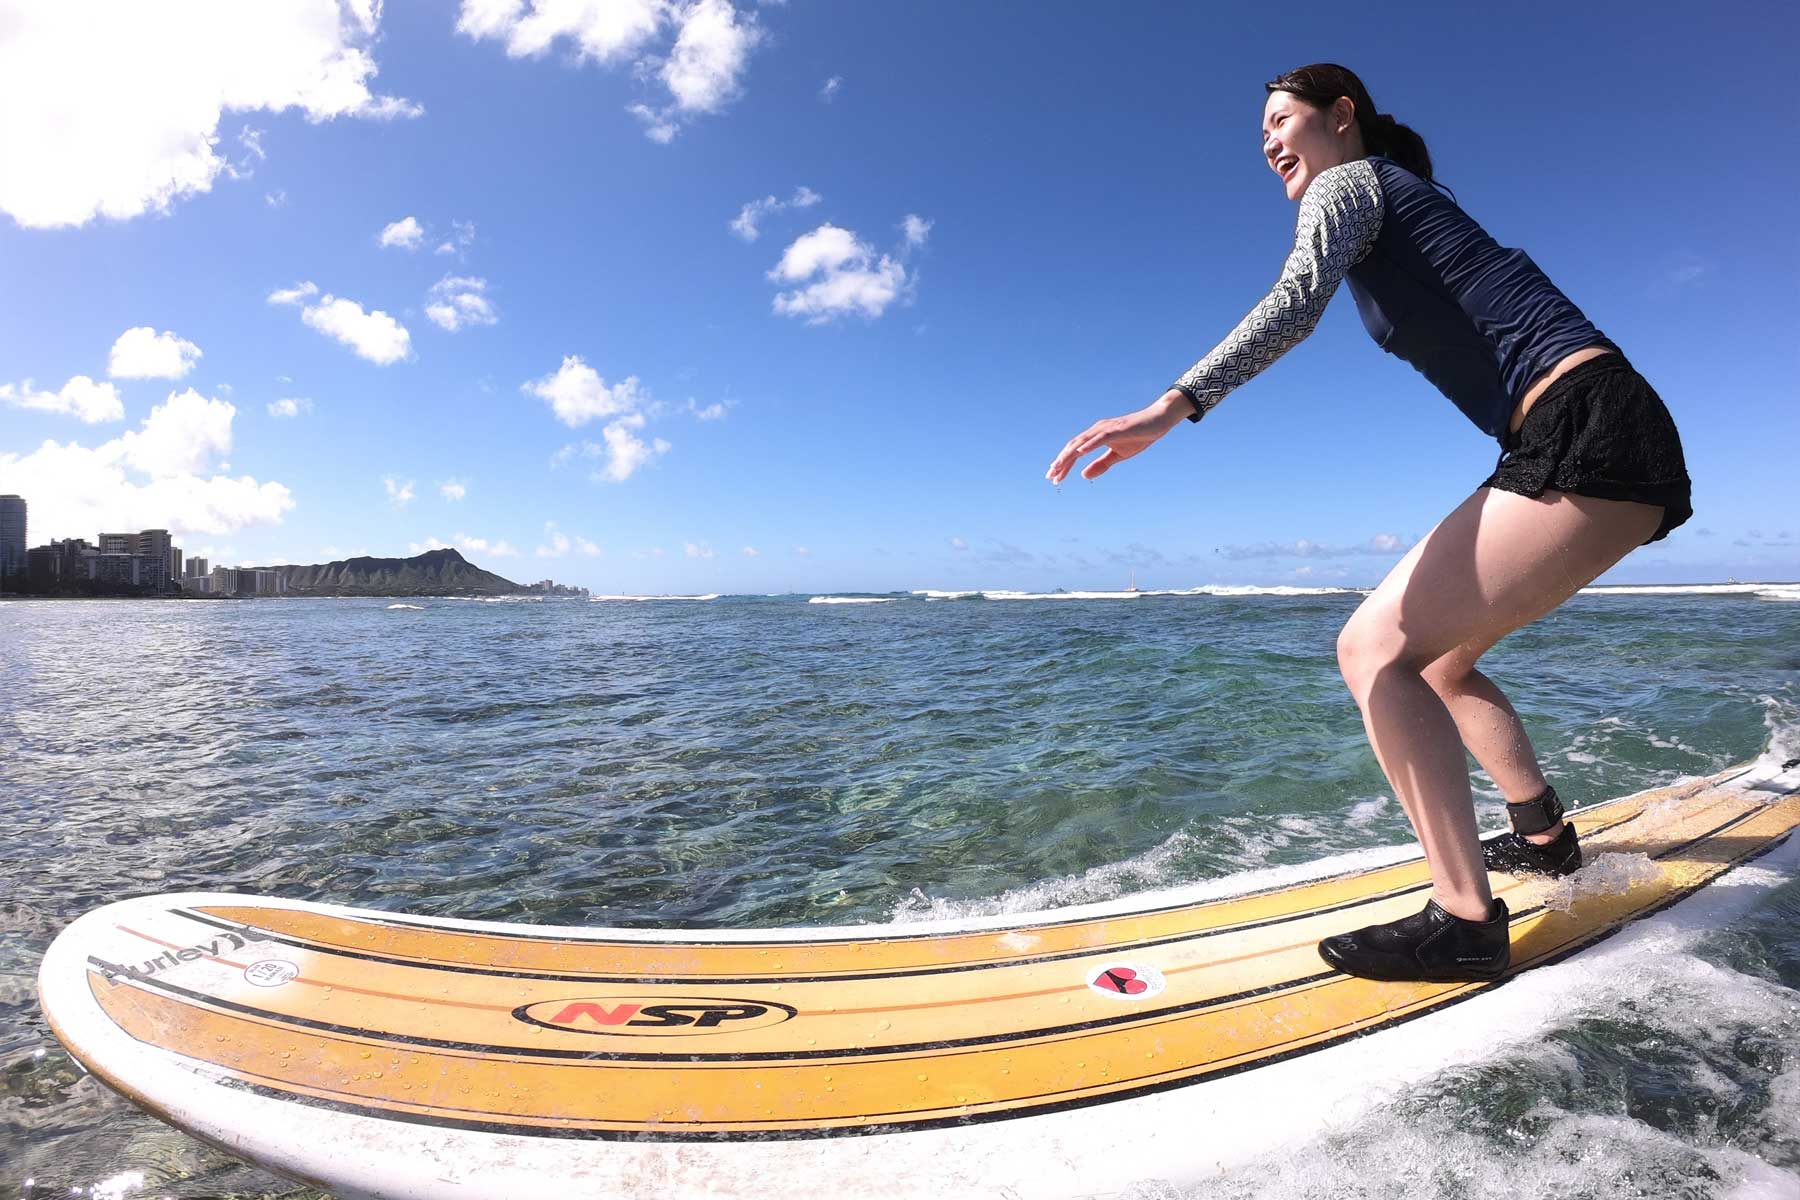 Surfer Girl Academy surf school in Honolulu, Hawaii.